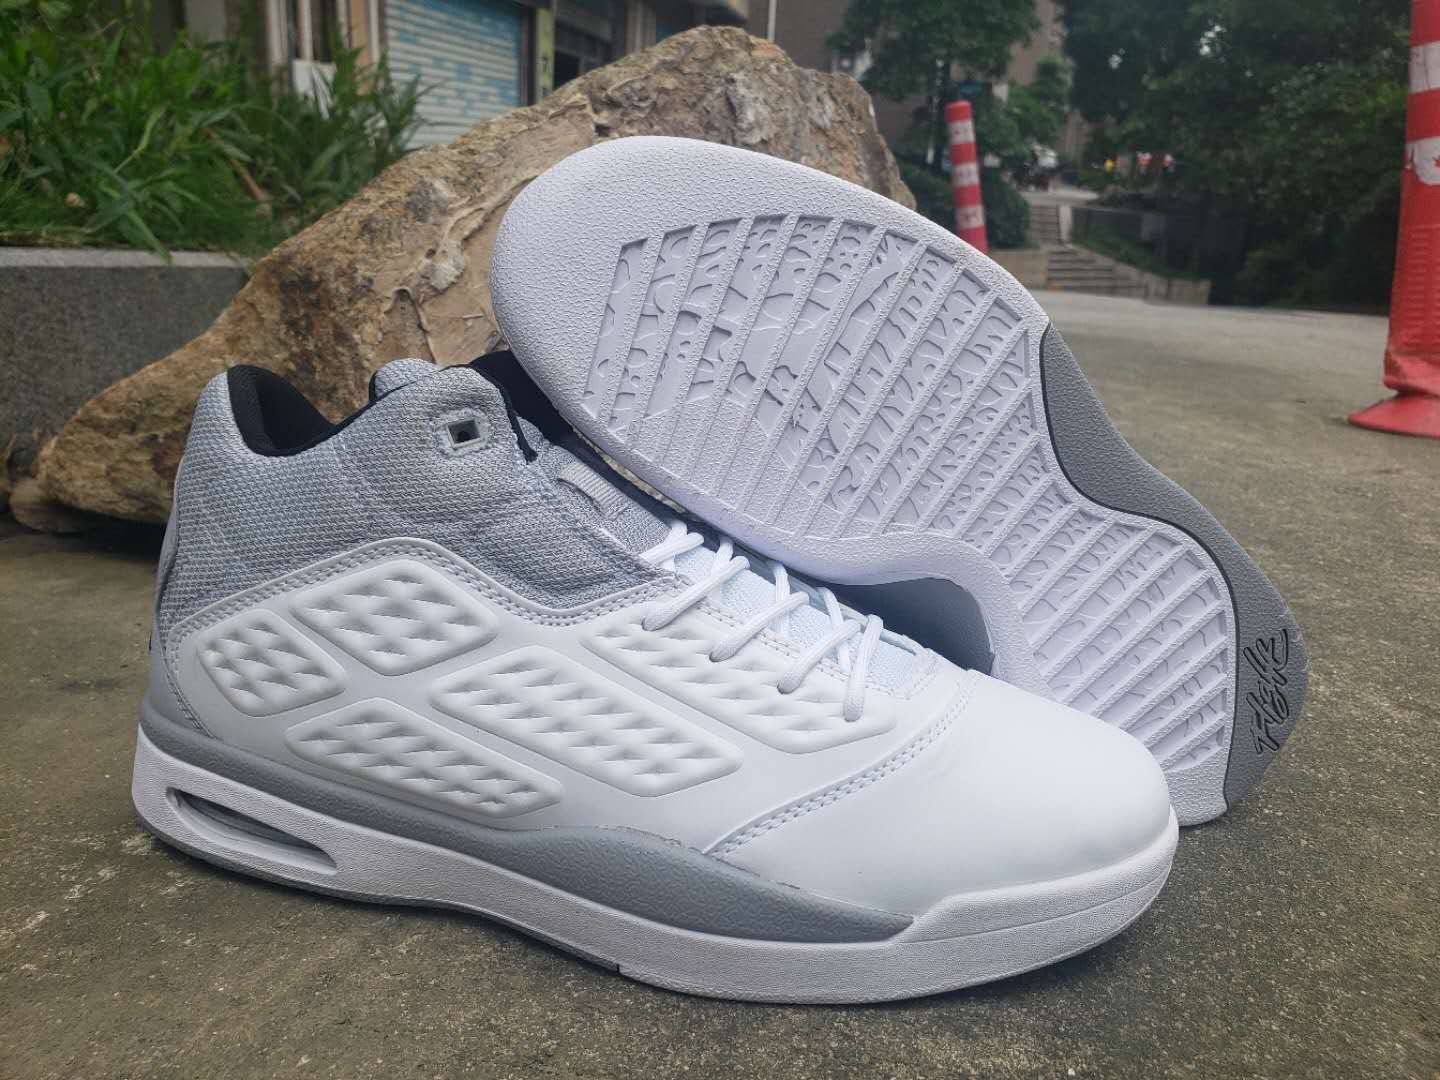 2019 Air Jordan New School White Grey Shoes